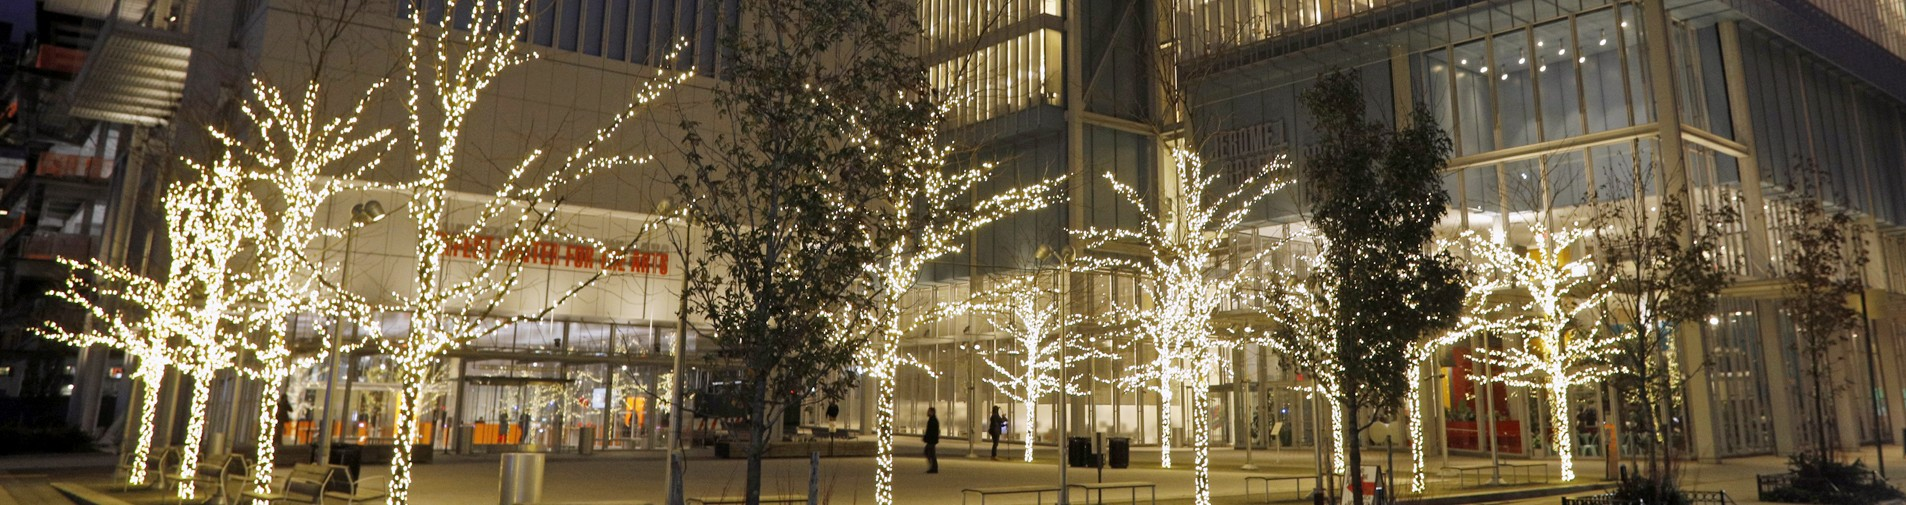 Trees around the Small Square at the Manhattanville campus, illuminated with lights